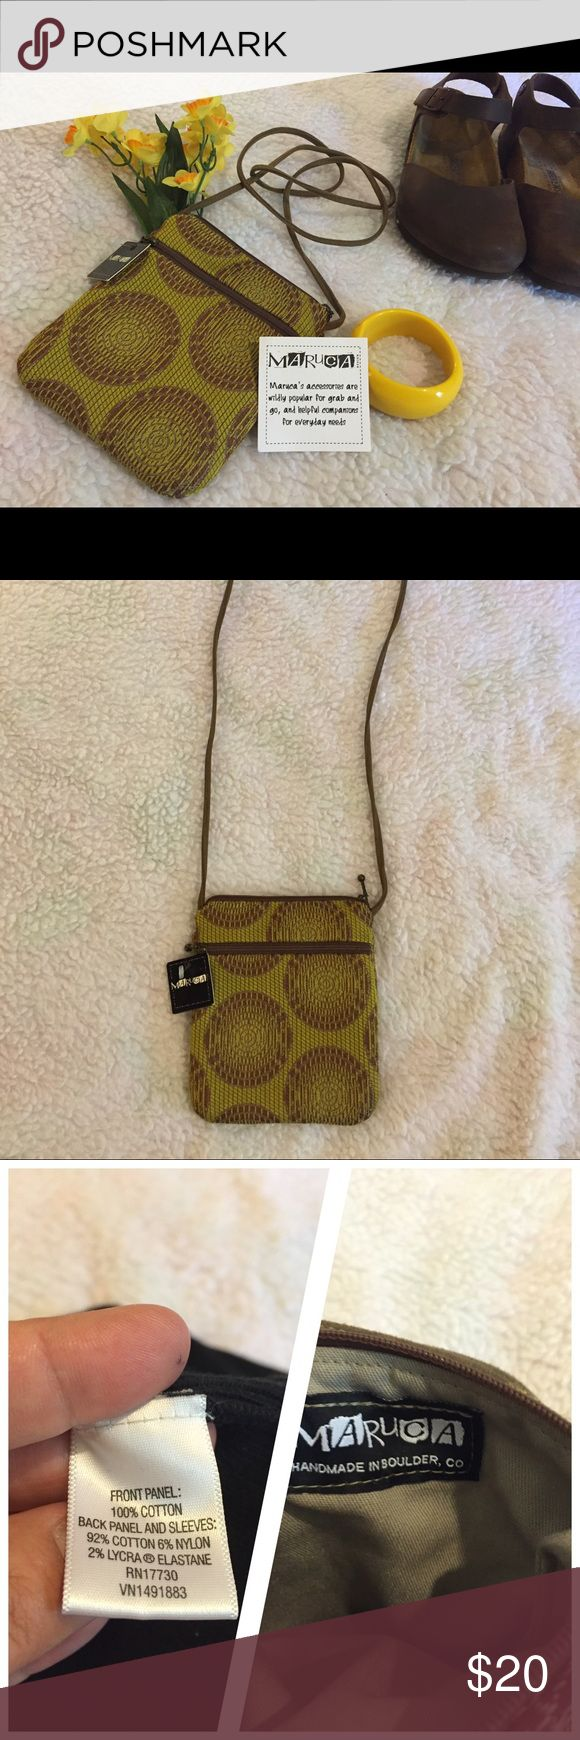 Adorable mini festival cross body bag NWT  Perfect cross body festival bag by Maruca  Handmade in Colorado  Measures 6x7  Zippered from pouch and zippered enclosure  Made of sturdy canvas and brocade material  Strap is faux suede  Maruca Bags Crossbody Bags